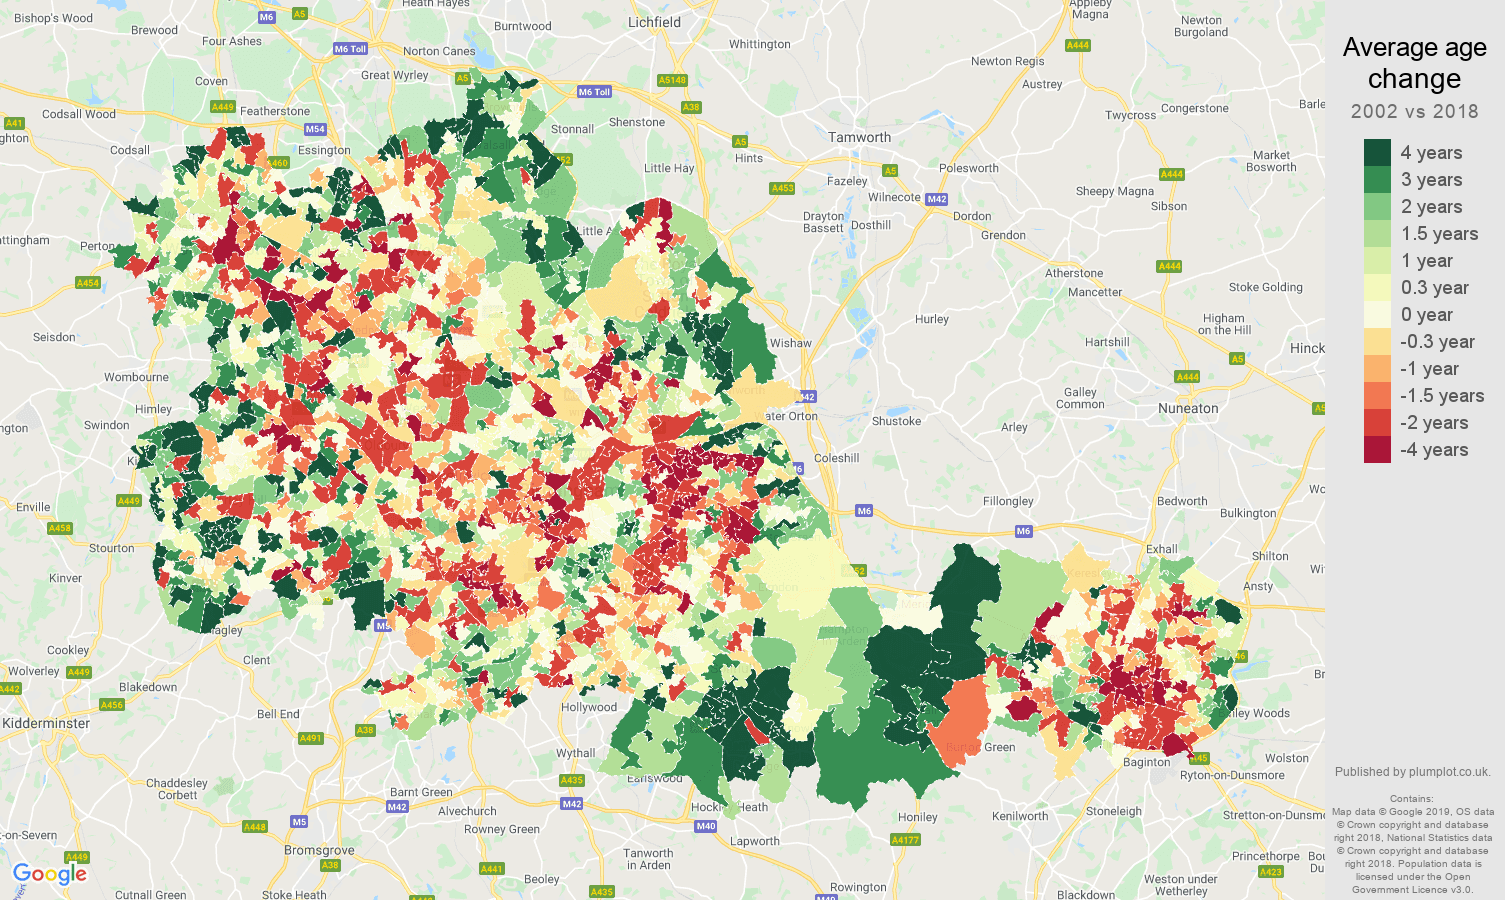 West Midlands county average age change map